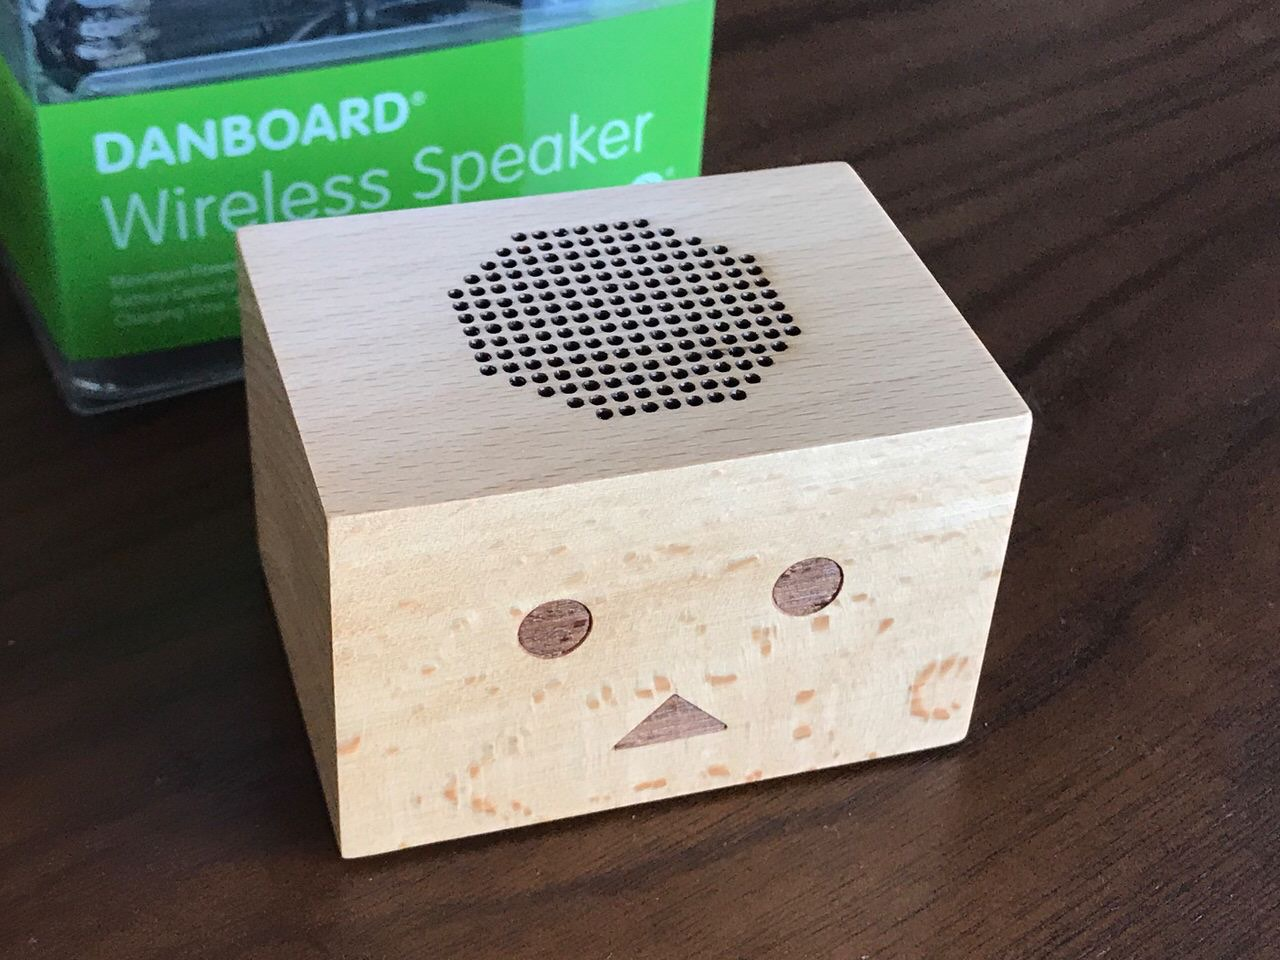 cheero Danboard Wireless Speaker 03